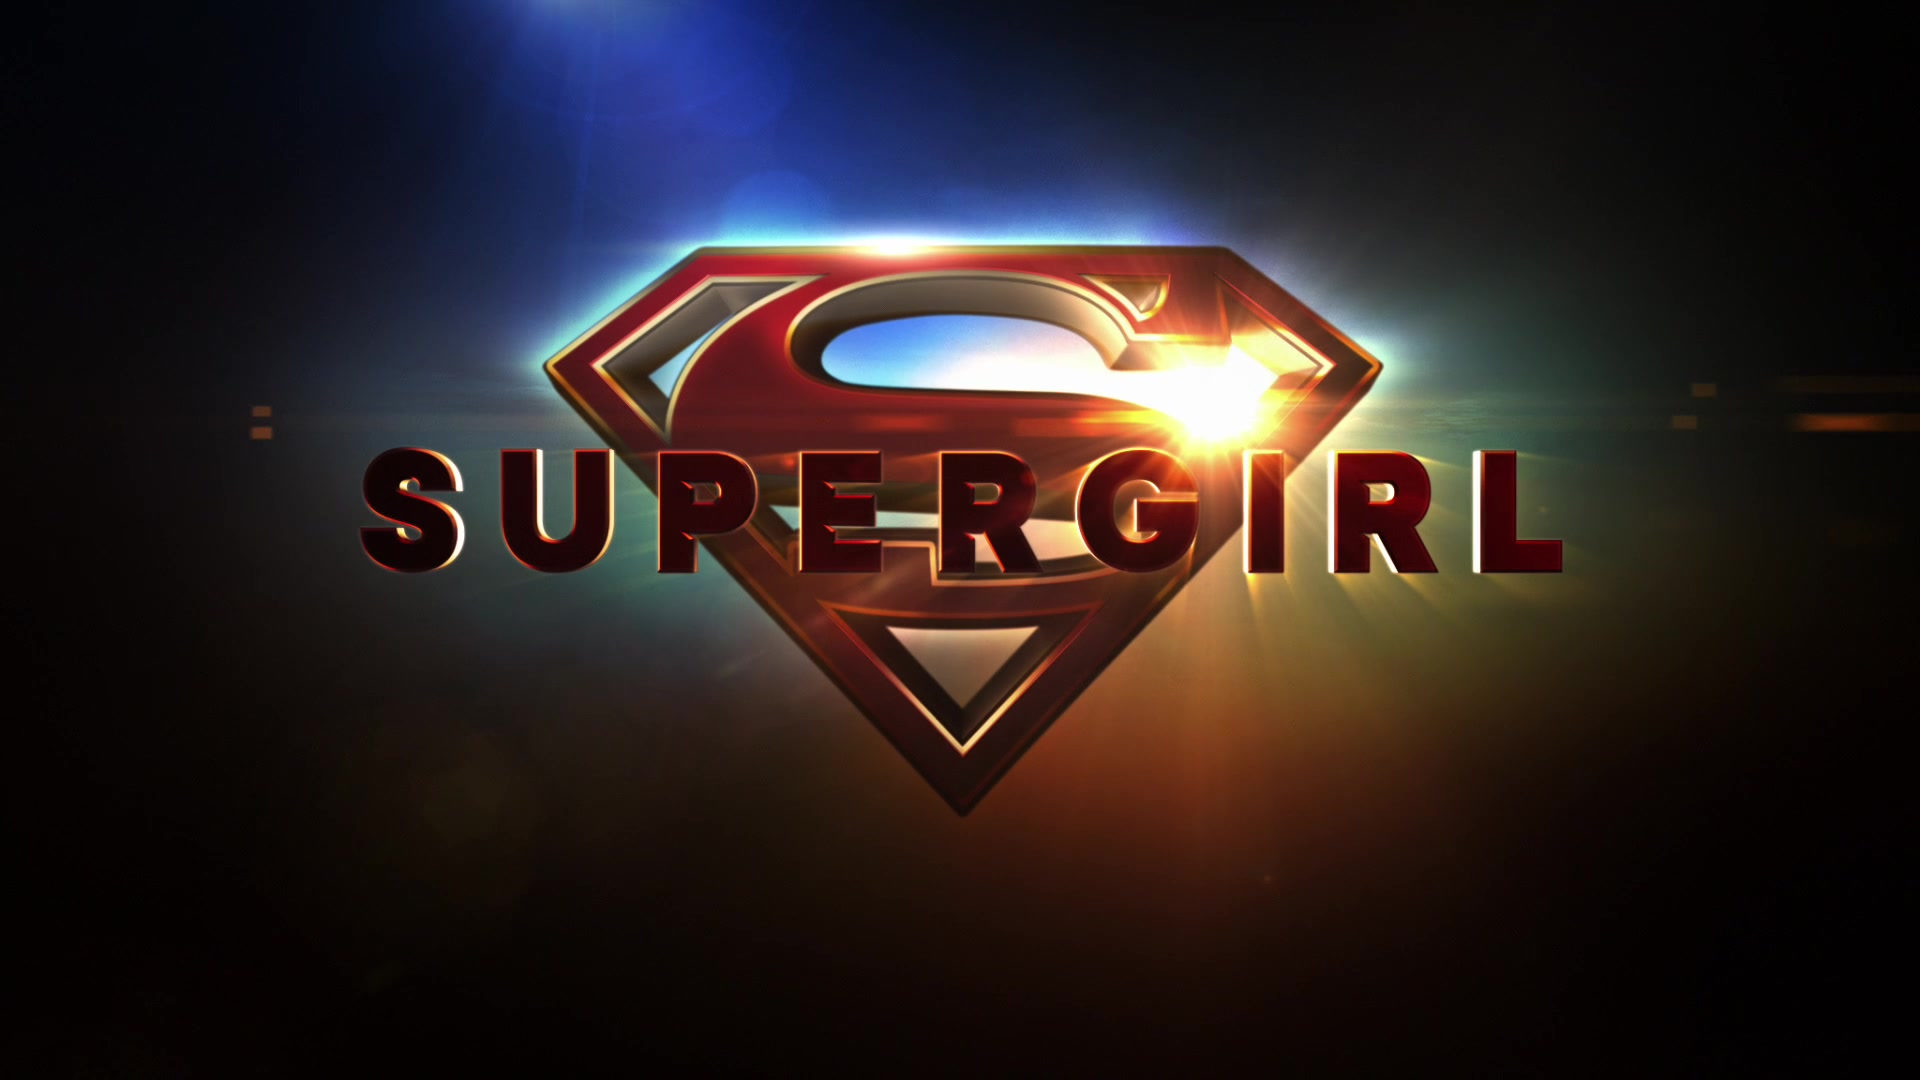 Supergirl (TV Series) Episode: Deus Lex Machina